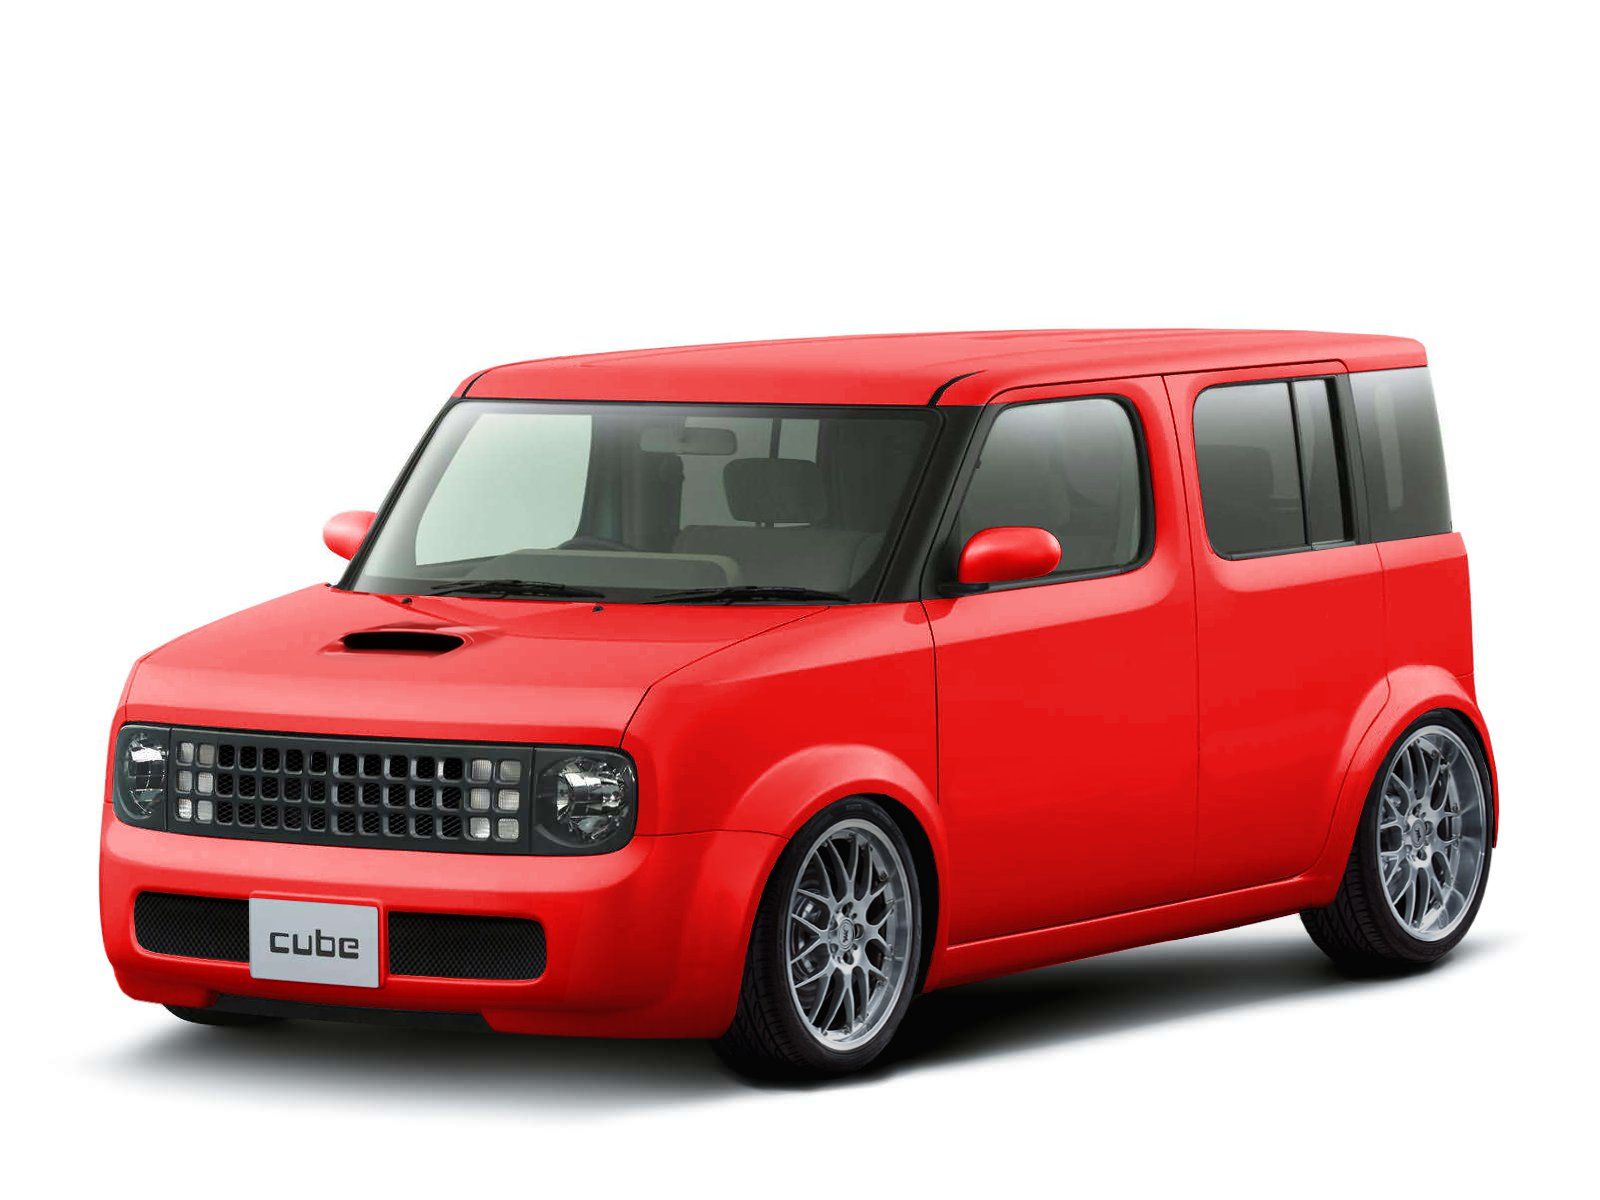 nissan cube deine automeile im netz. Black Bedroom Furniture Sets. Home Design Ideas